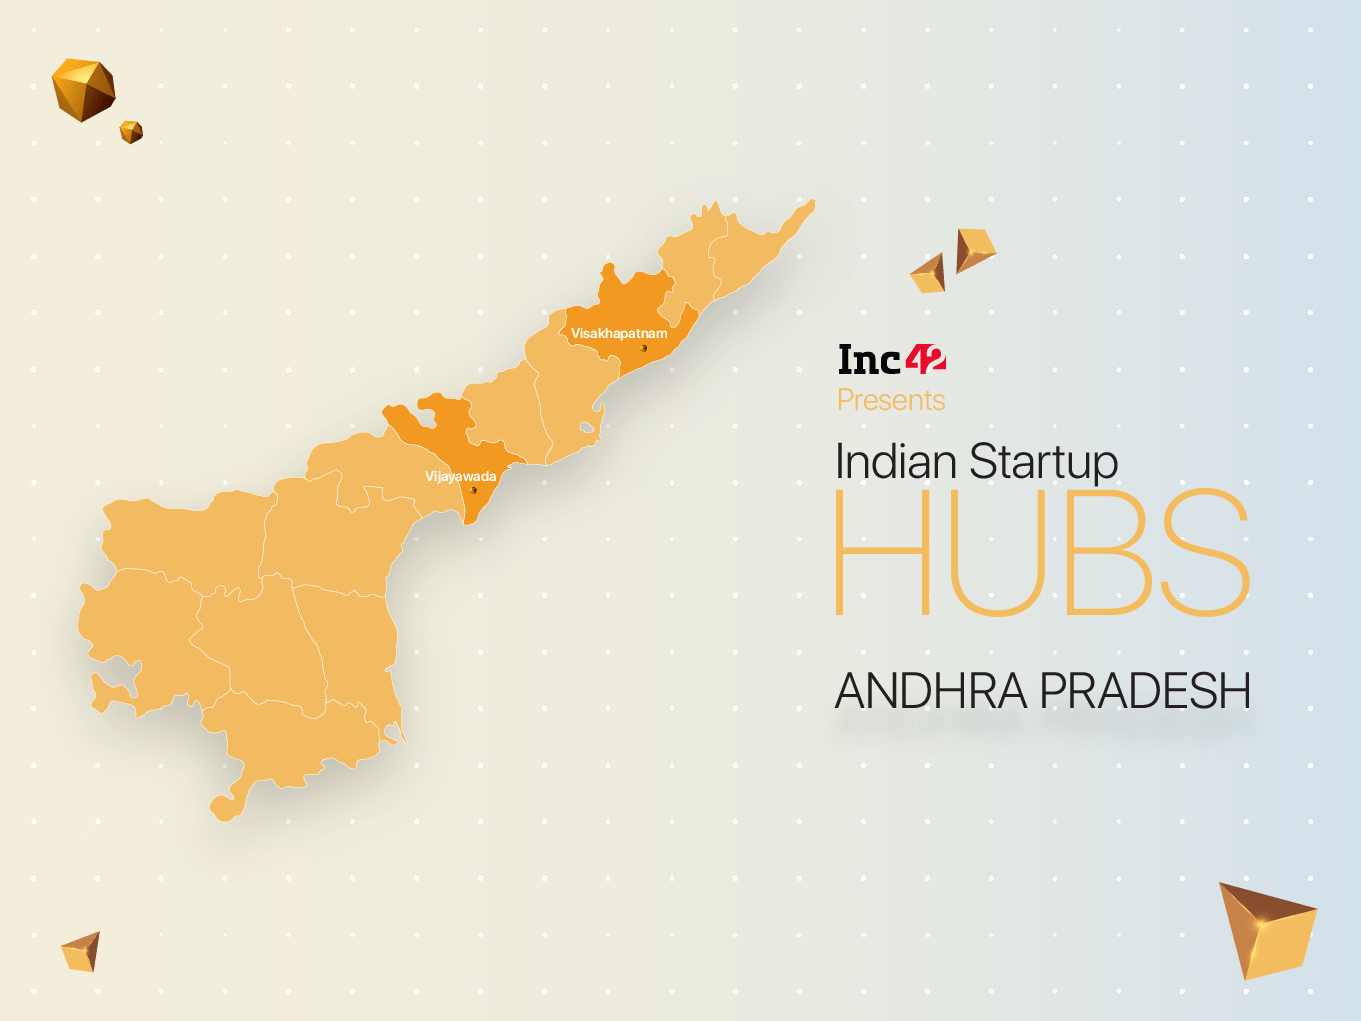 How Andhra Pradesh Is Building Its Startup Ecosystem From Scratch